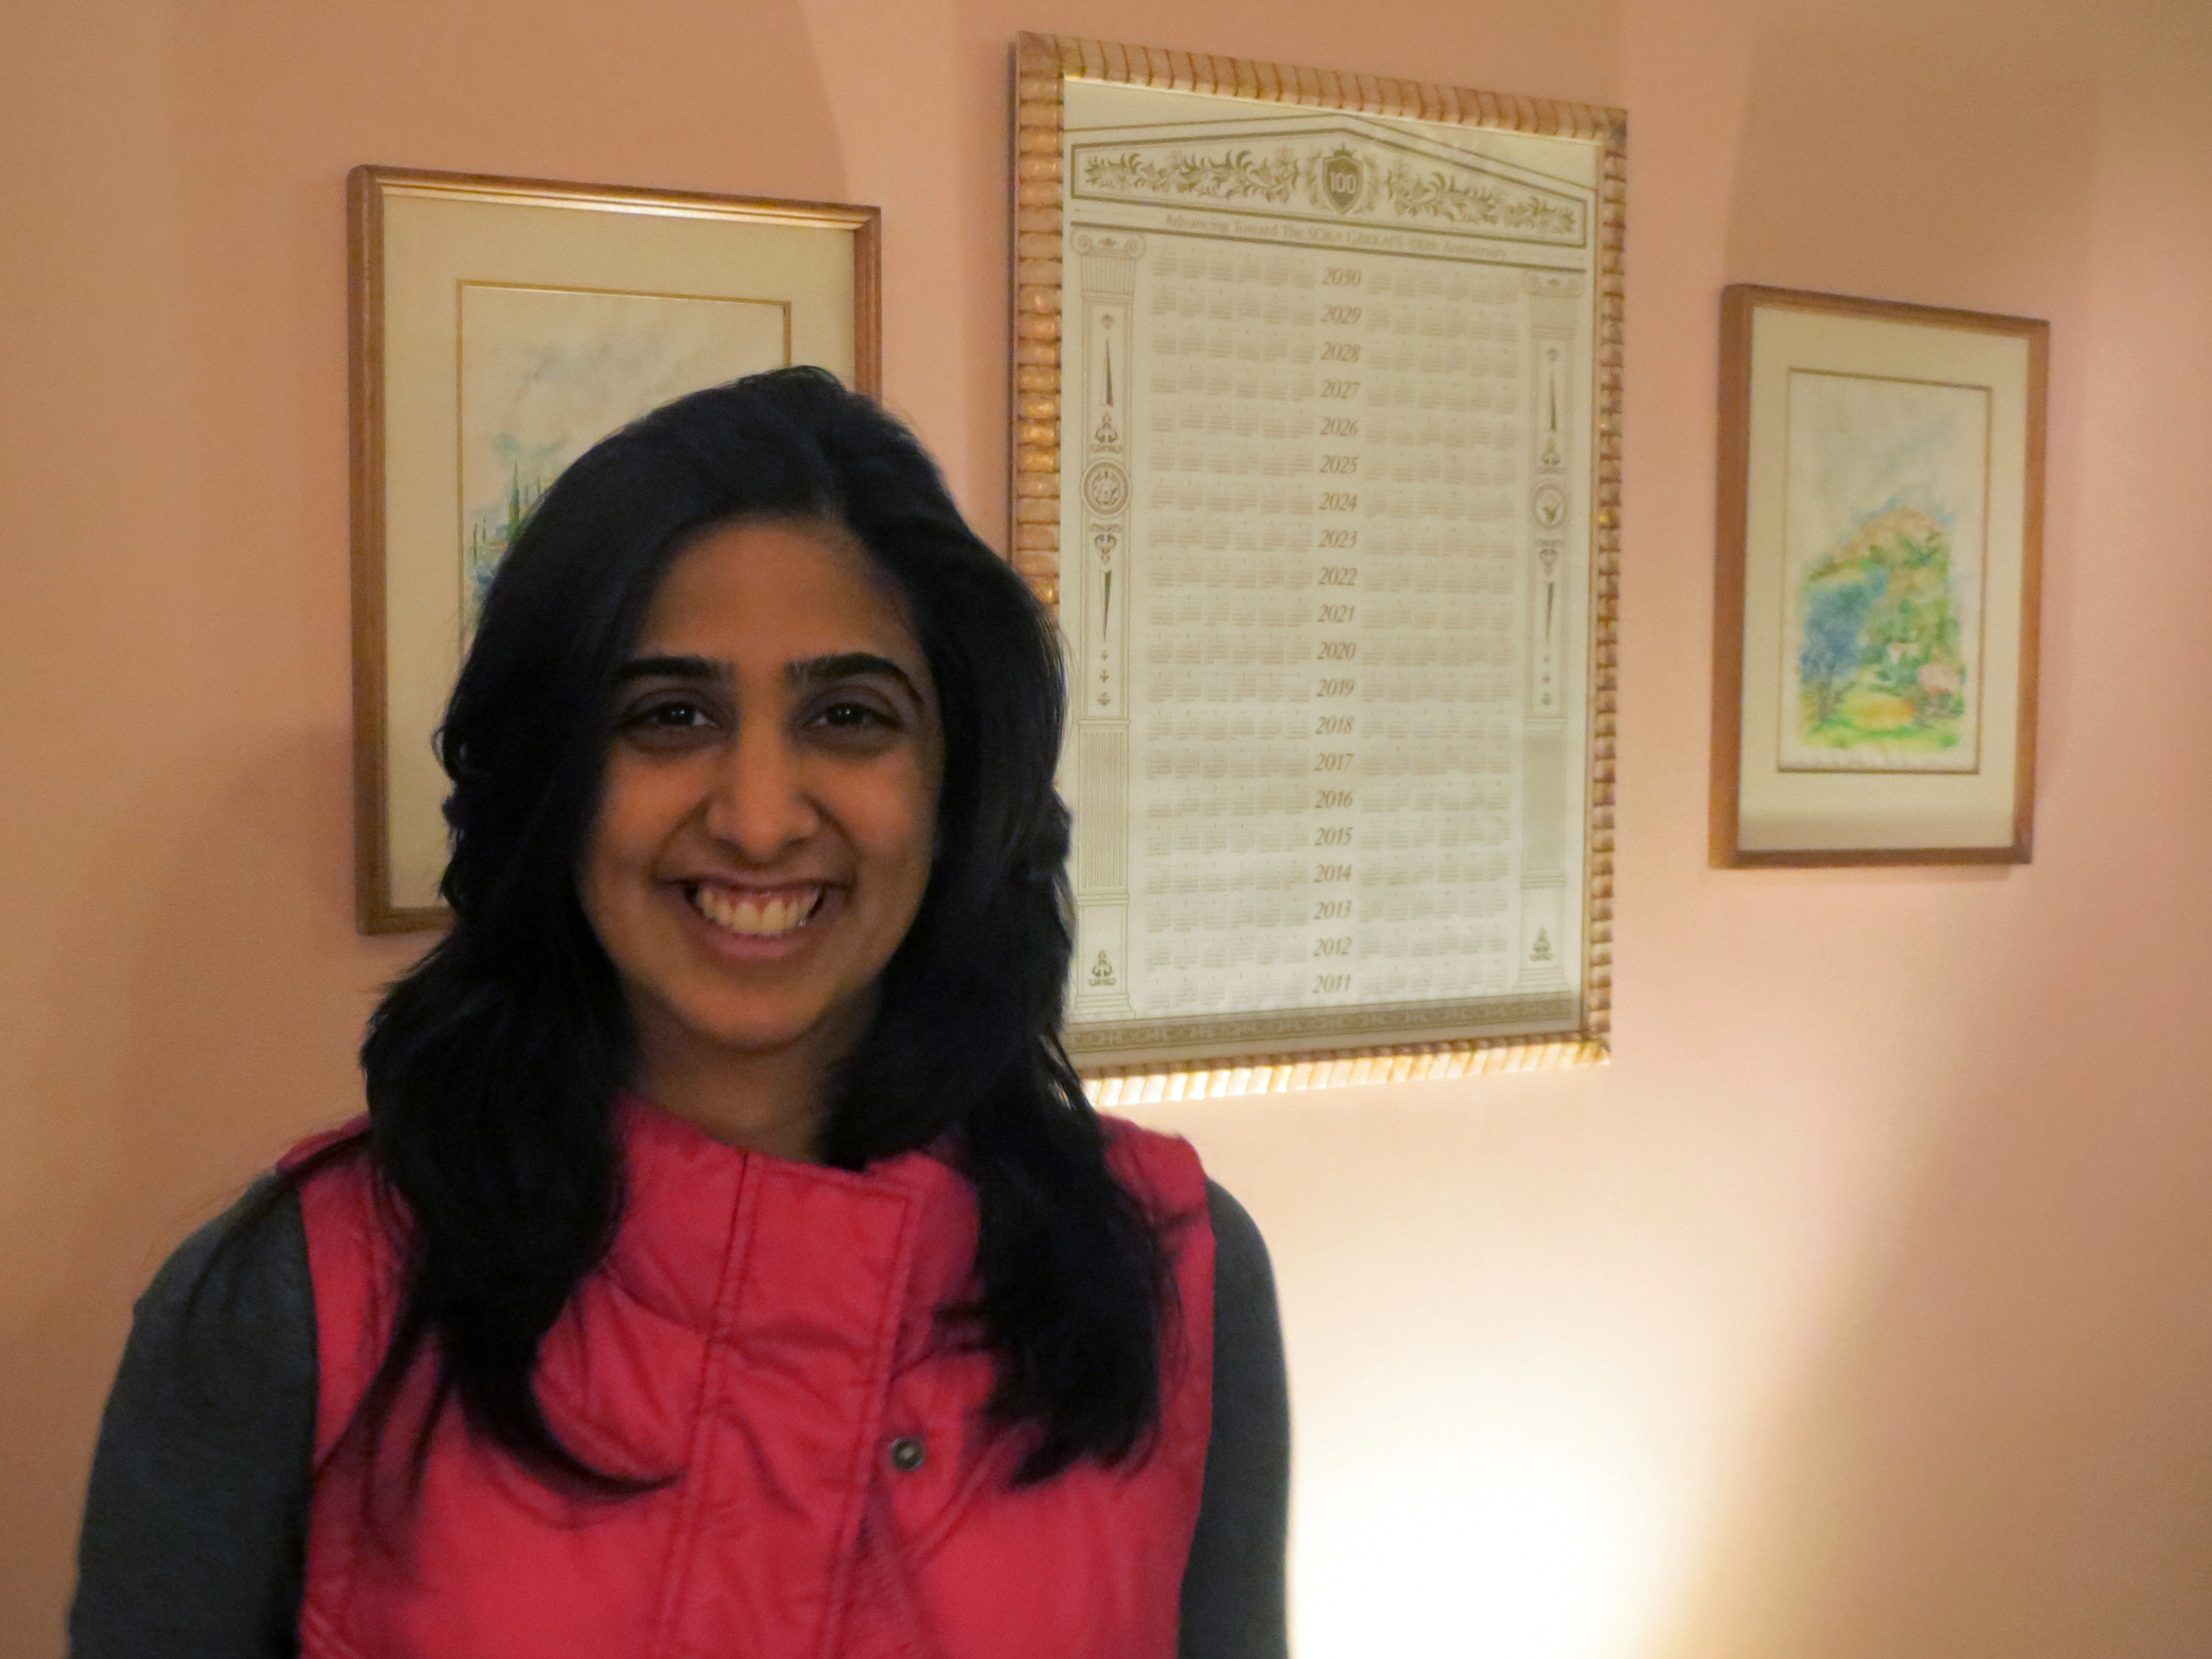 Delhi's Proust Questionnaire – Supriya Anand, Noida Sector 44